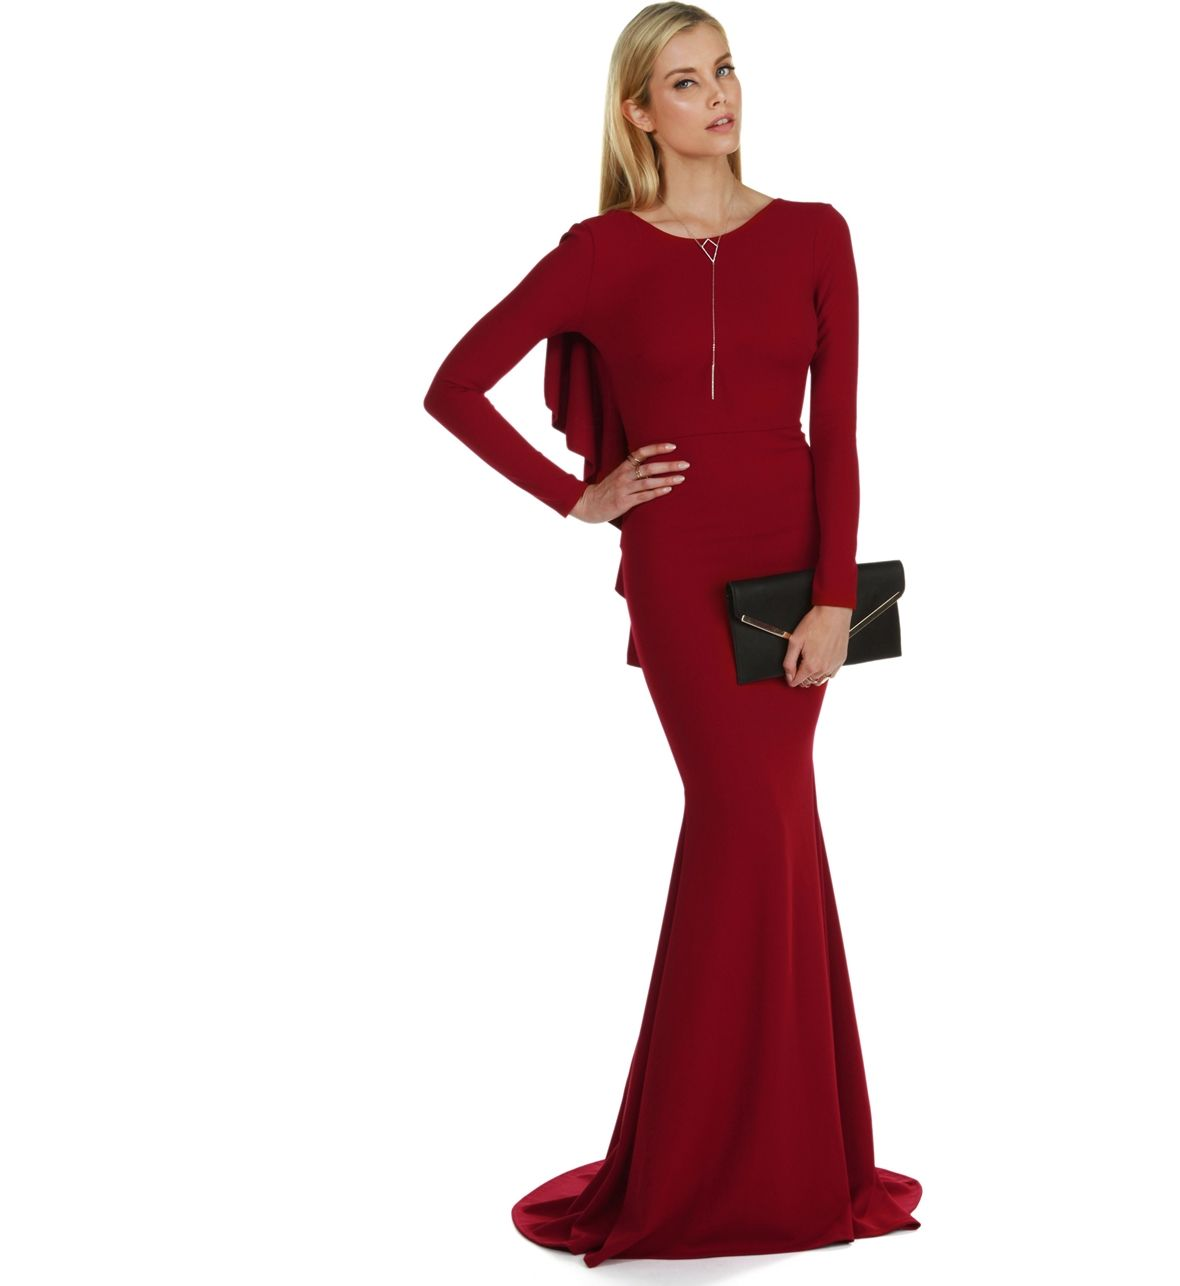 Sophisticated and elegant this dress features a high front neckline